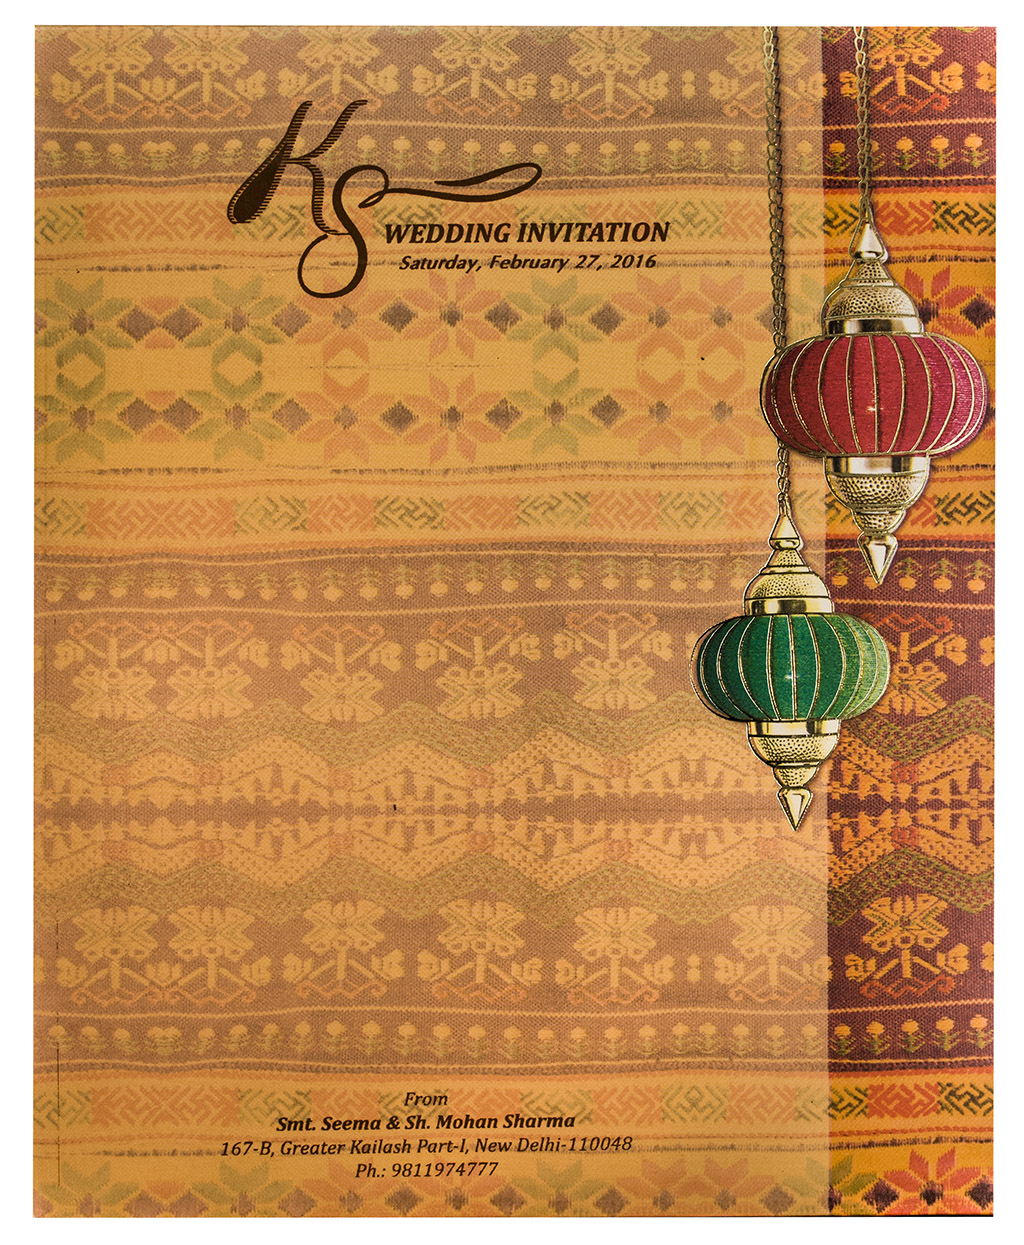 Wedding Invitations in Traditional Design & Colors